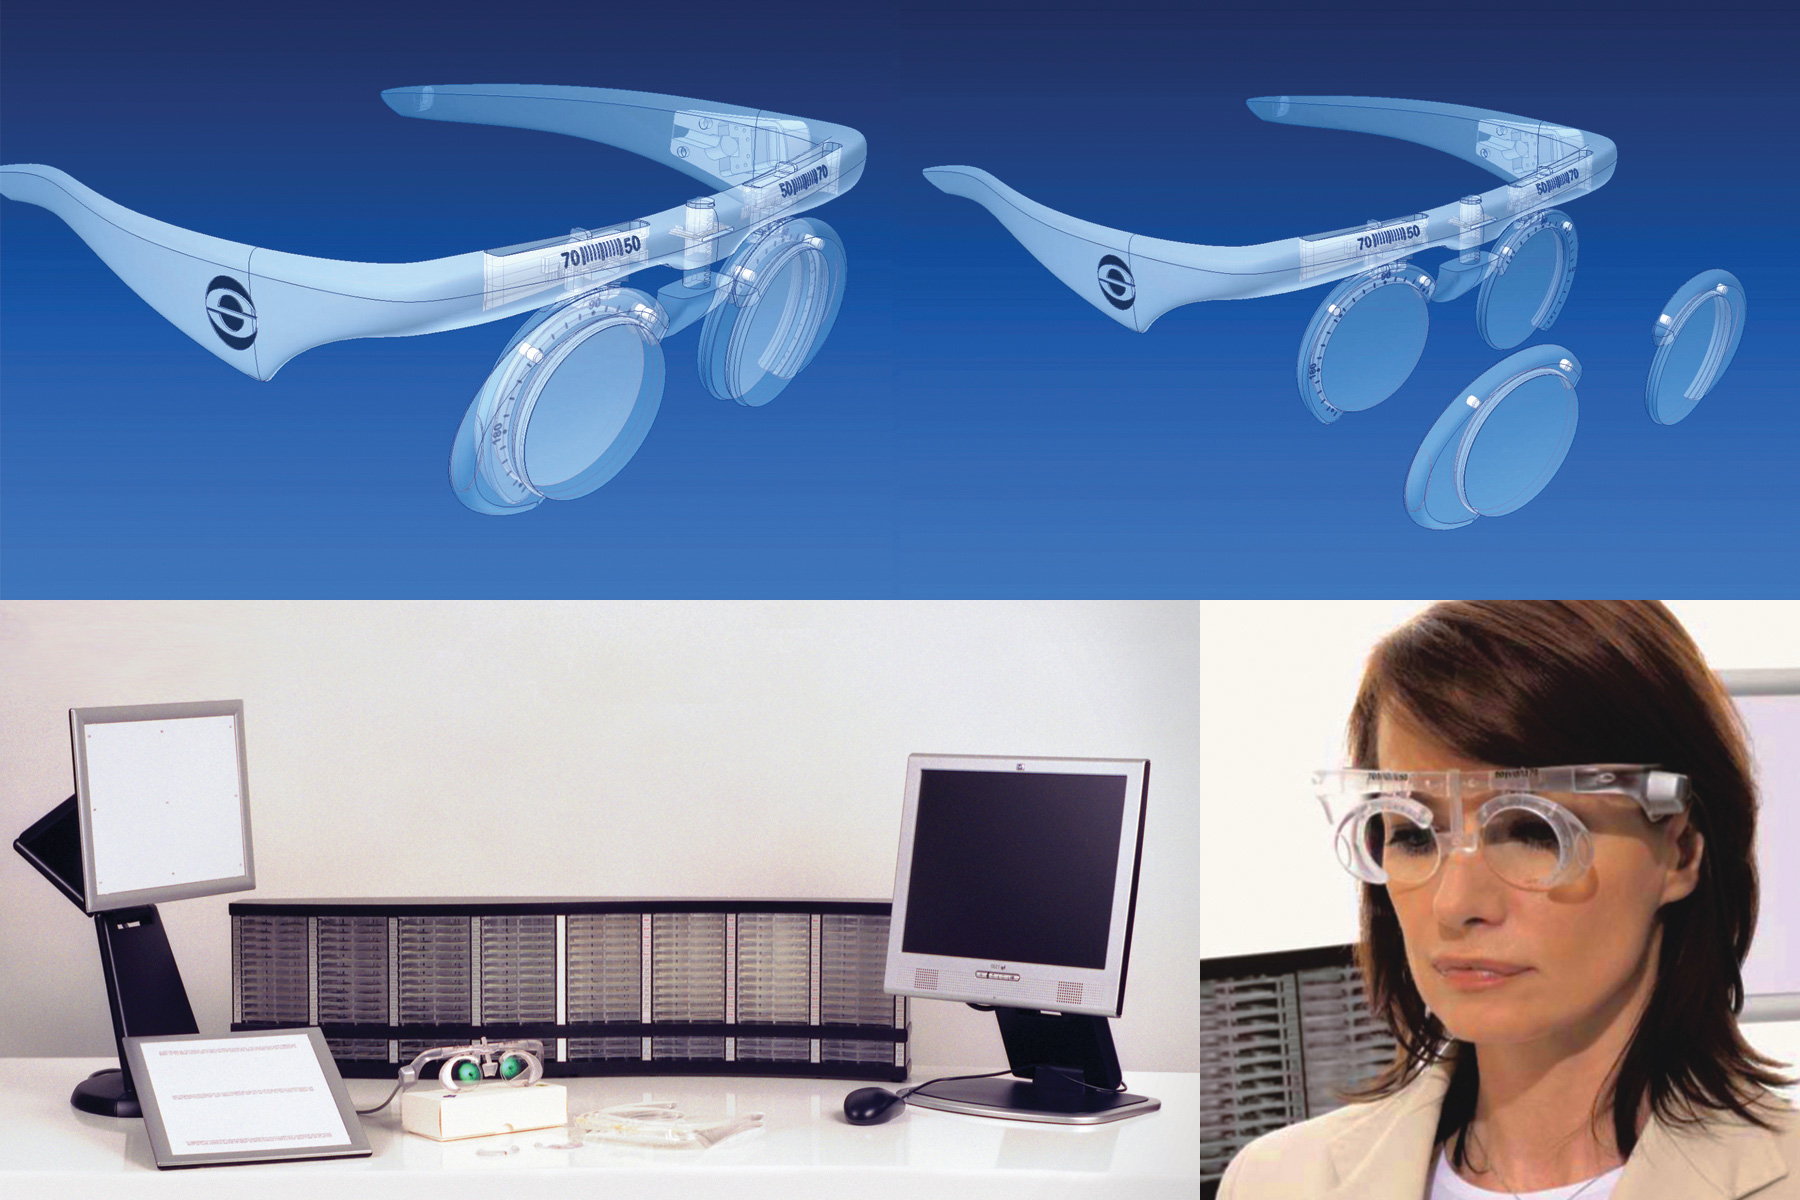 I-Tracker - Carl Zeiss ophthalmic instrument